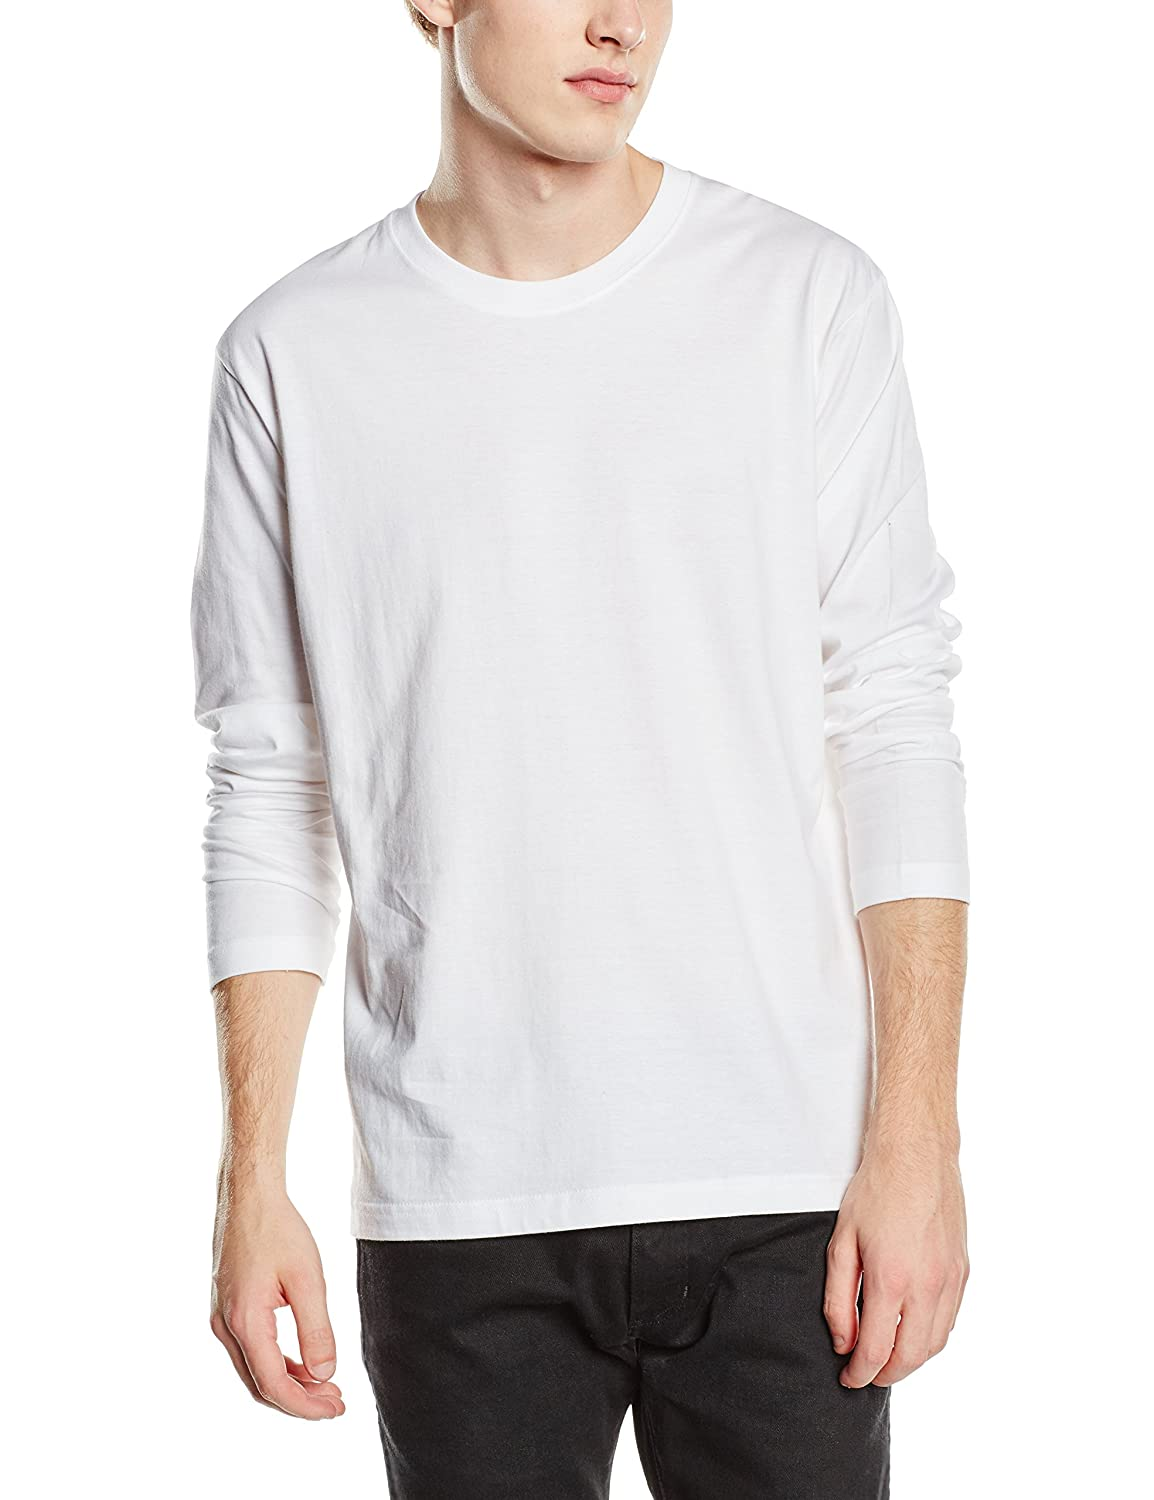 Stedman Apparel Herren T-Shirt Comfort-t Long Sleeve/st2130: Amazon.de:  Bekleidung